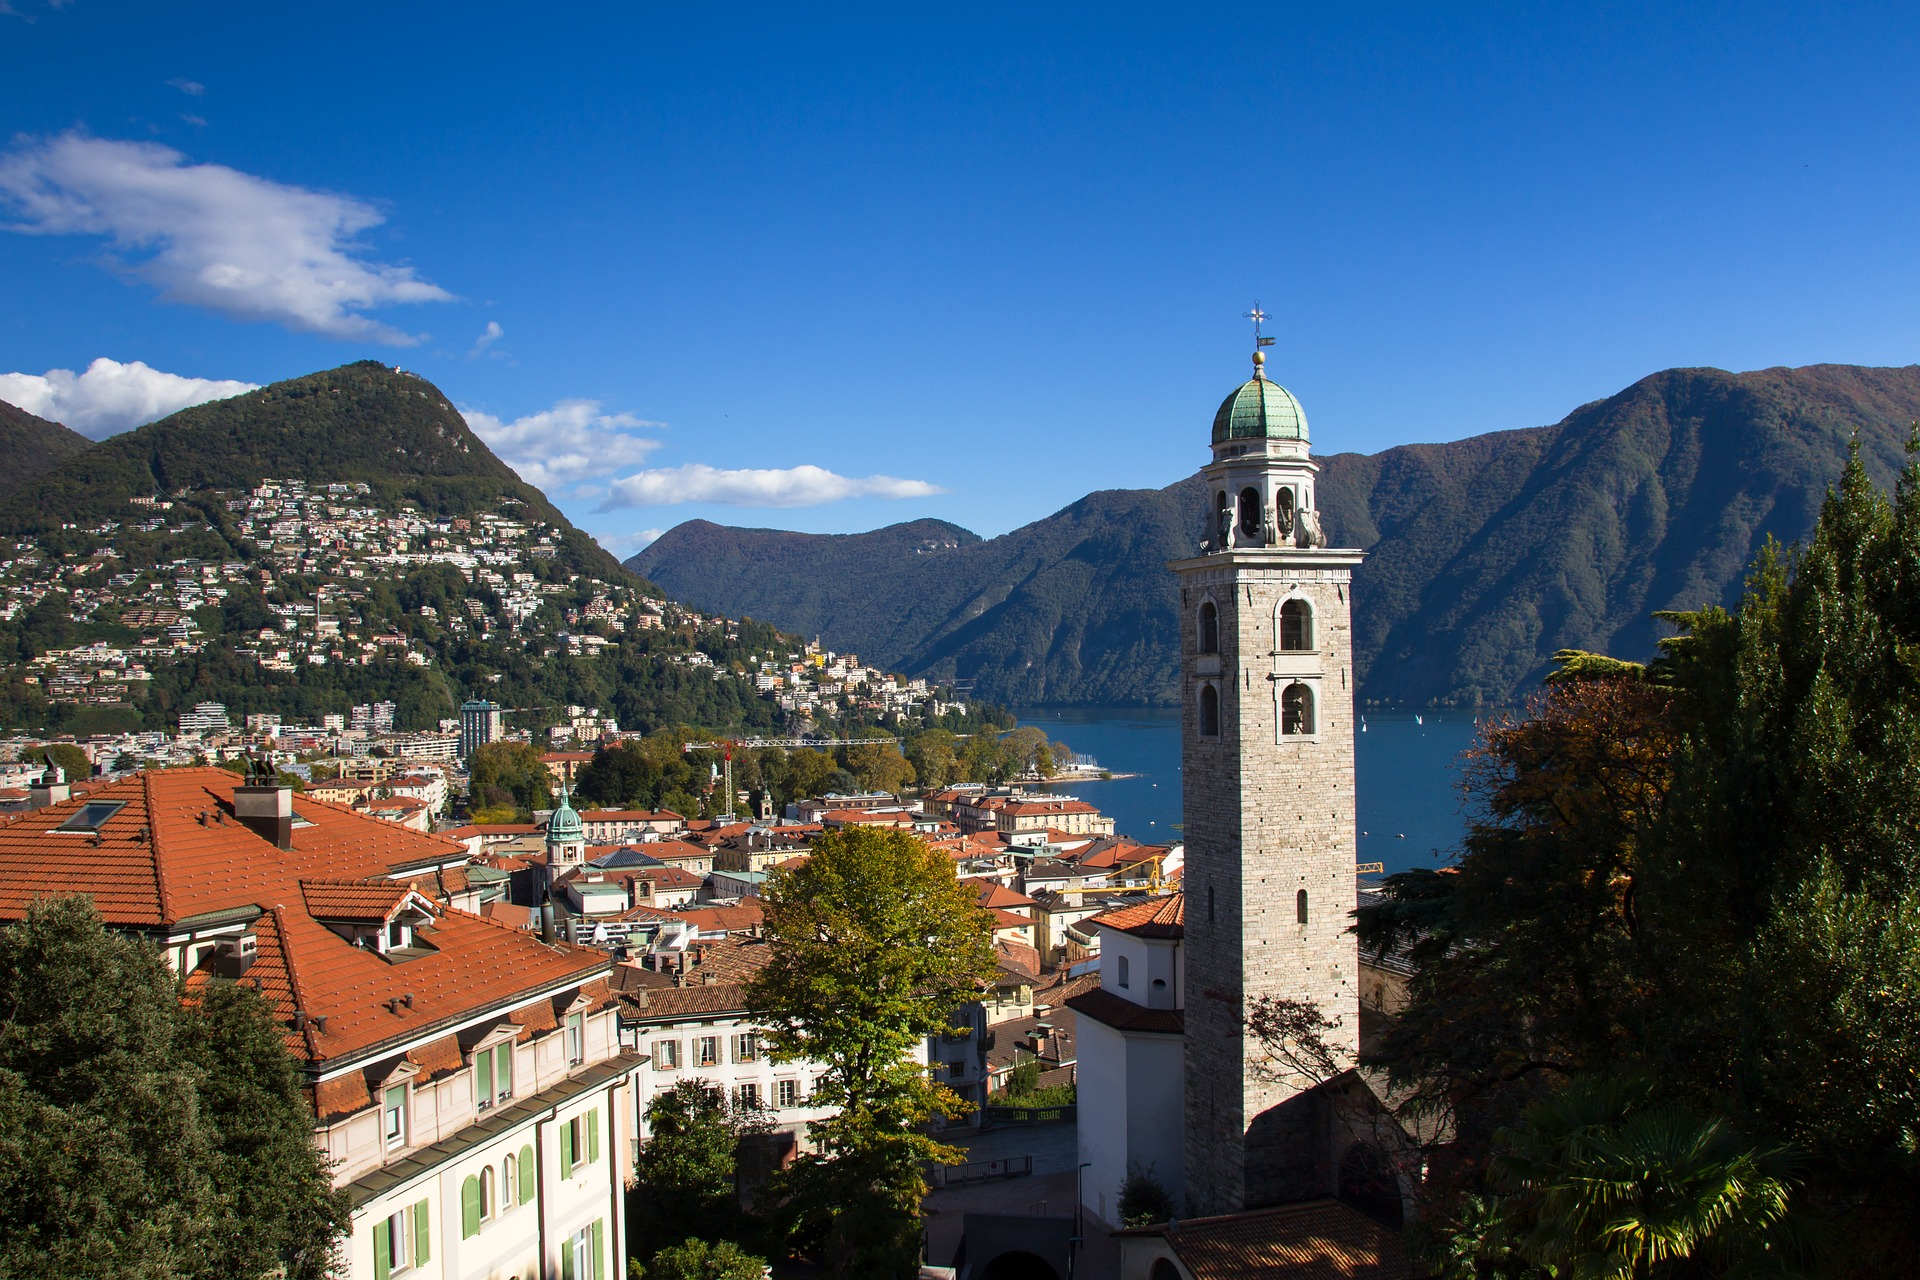 Top 10 Things to Visit in Lugano